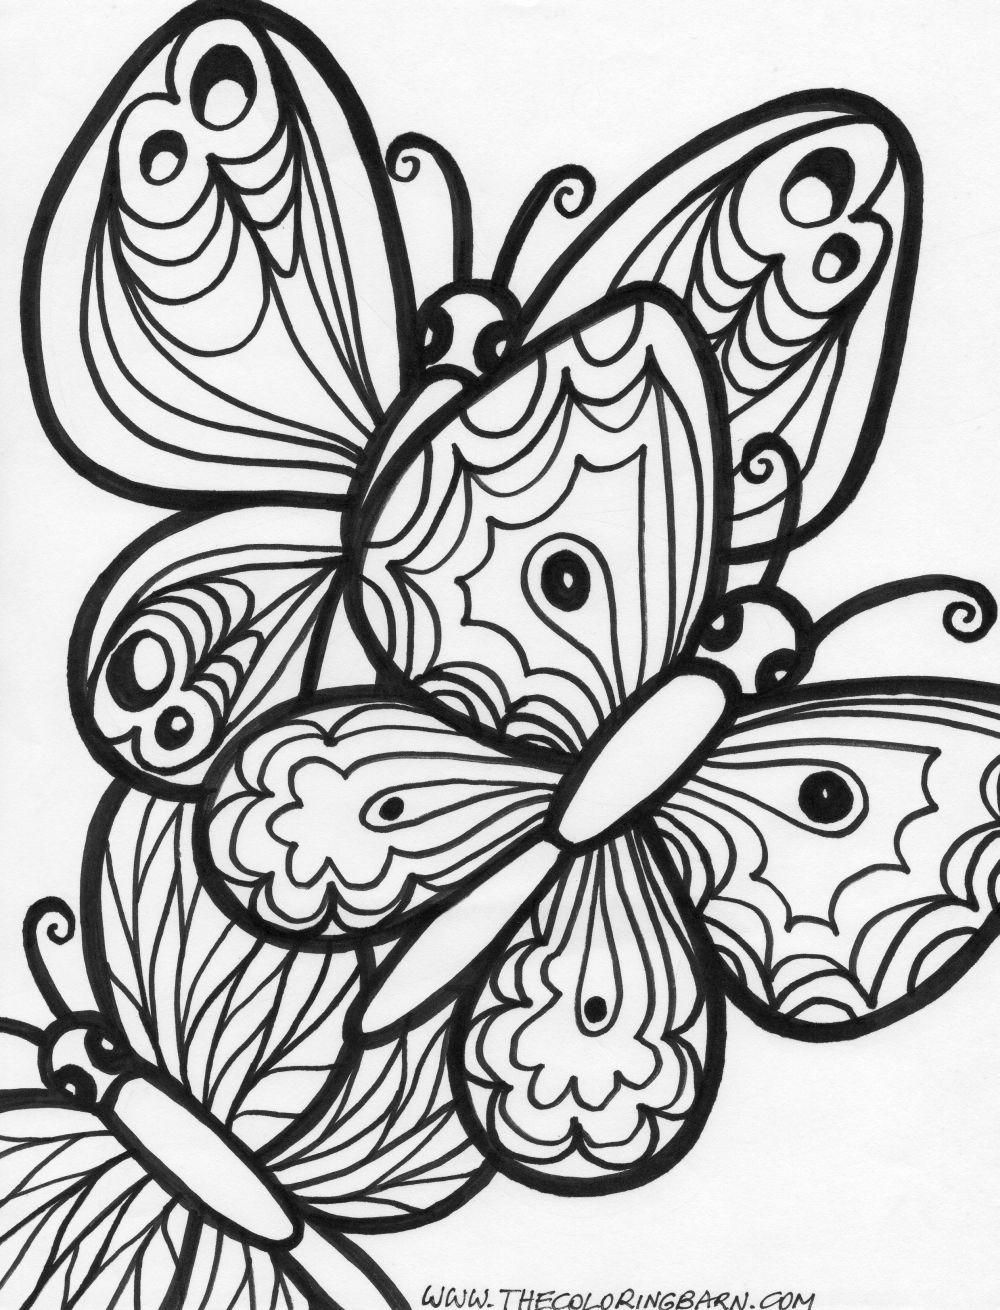 Colouring pages for adults with dementia - Download